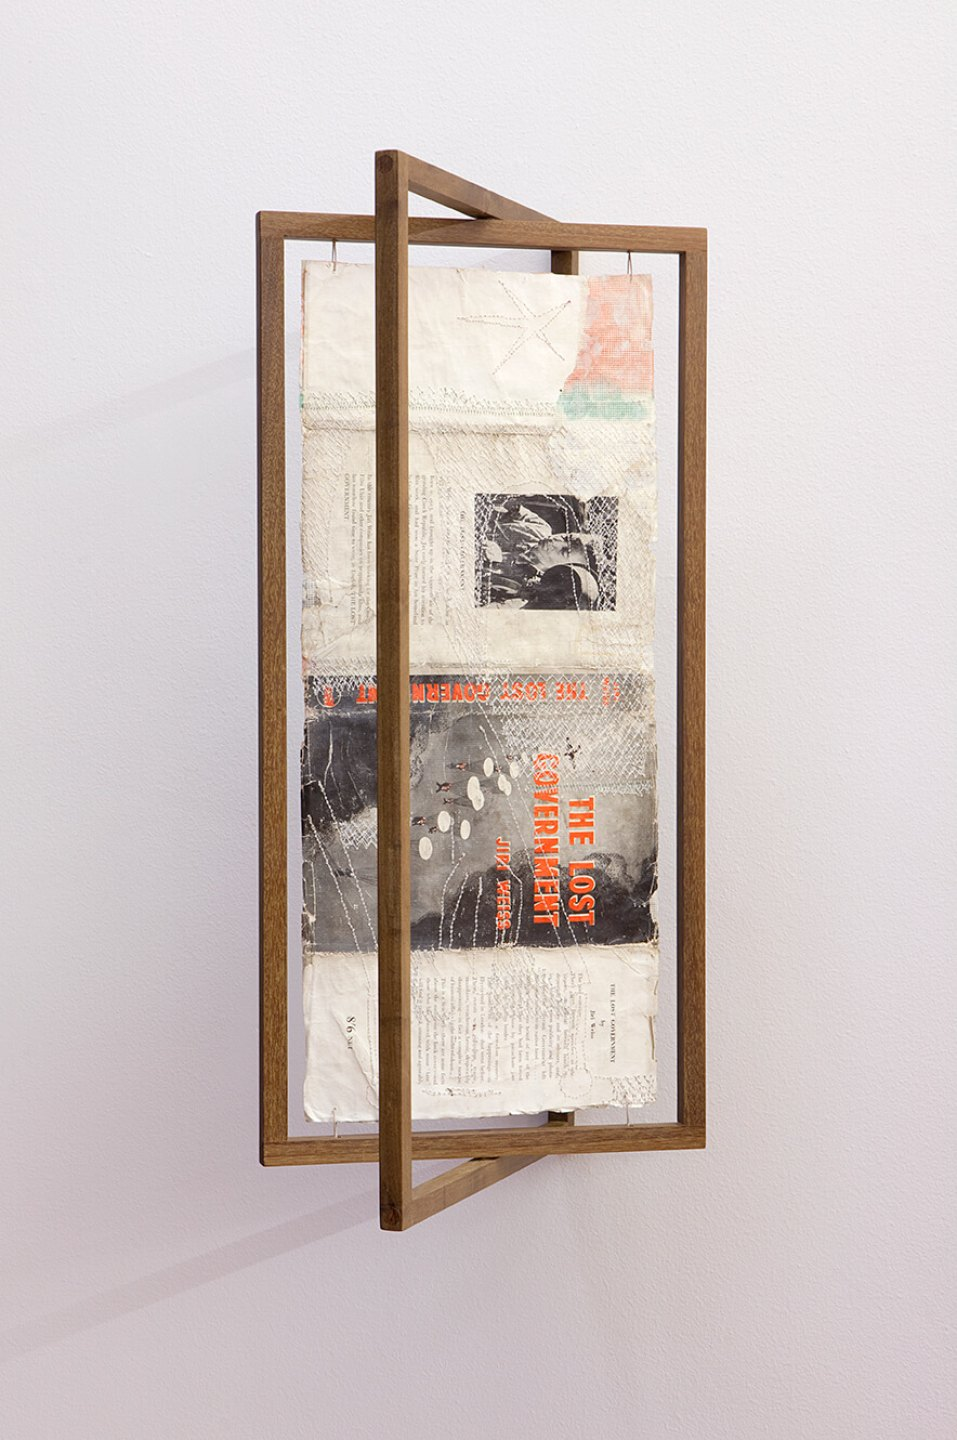 f.marquespeteado, <em>Dust Jacket</em>, 2004, gouaches on book embroidered by machine, 61 × 30 × 26 cm - Mendes Wood DM